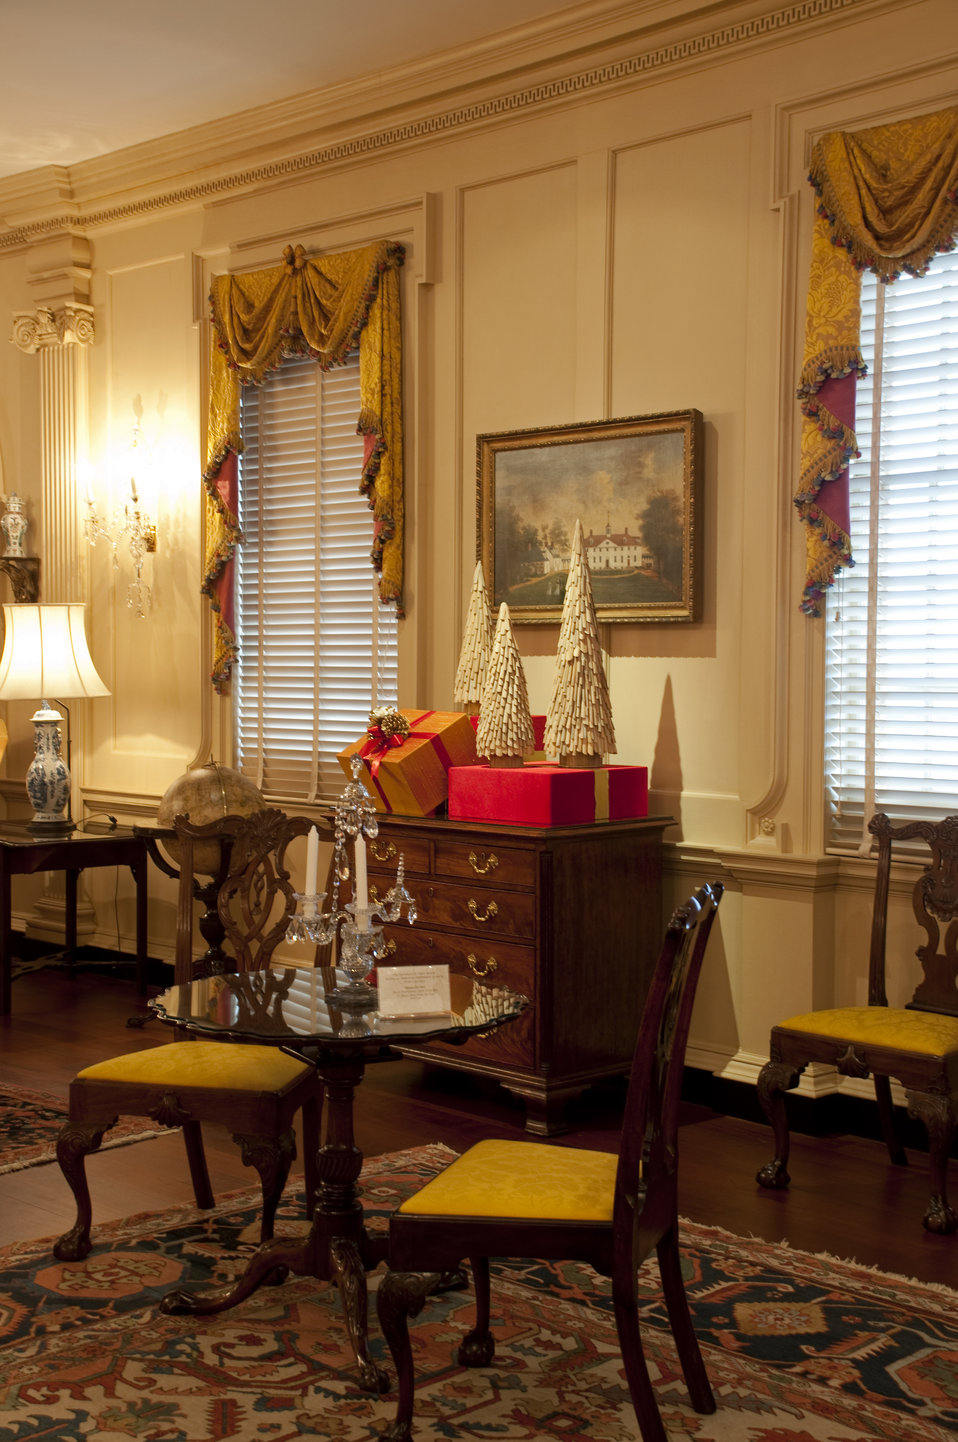 The U.S. Department of State Partners With Time Inc. and InStyle To Decorate the John Quincy Adams State Drawing Room